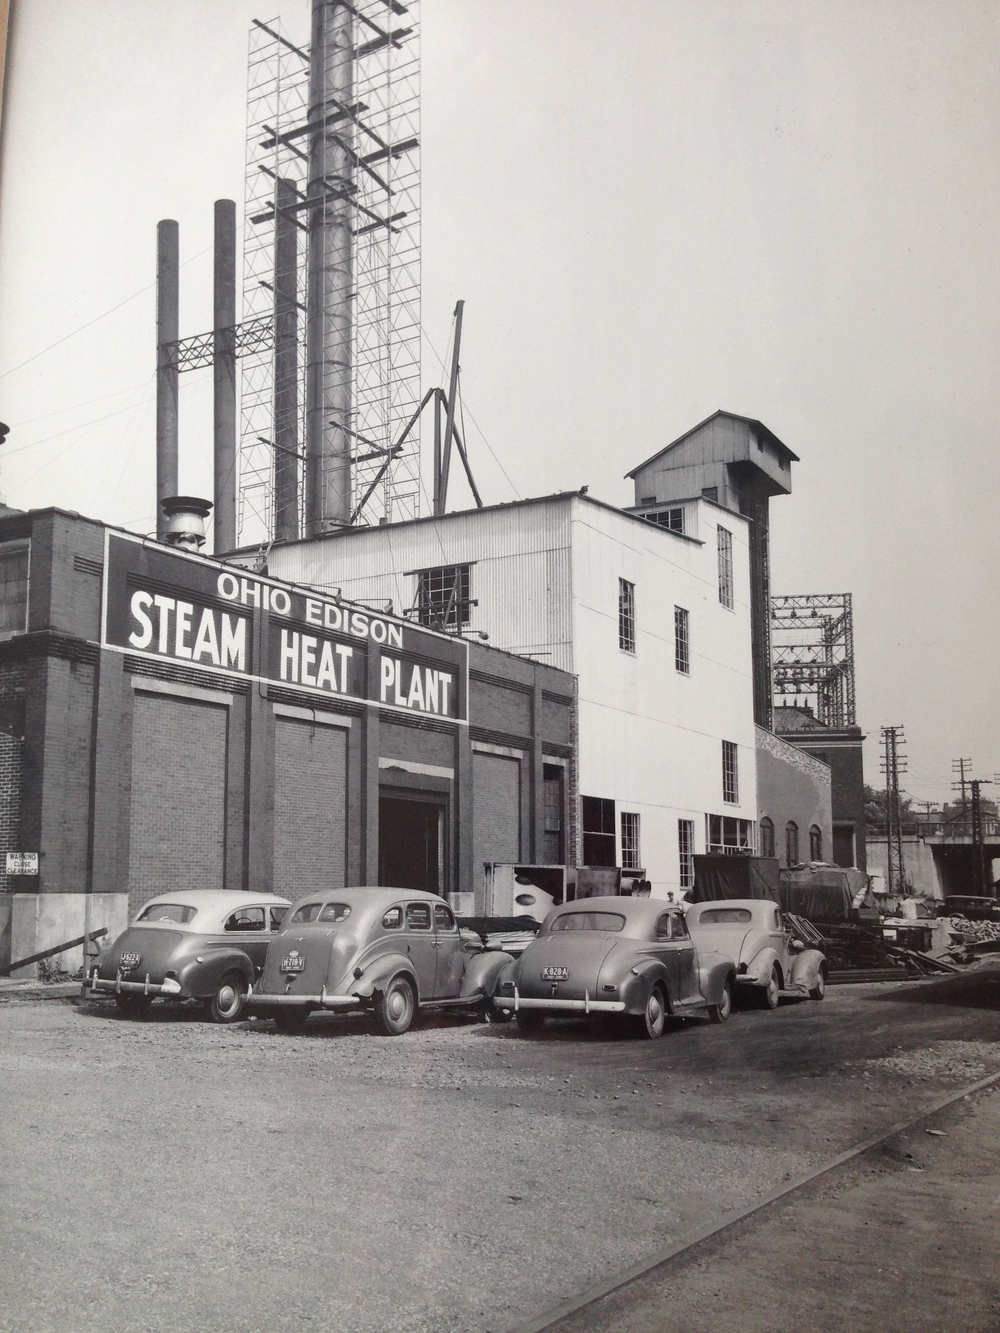 The district steam system in Youngstown has operated continuously for 120 years as a public utility serving the downtown business and educational community.